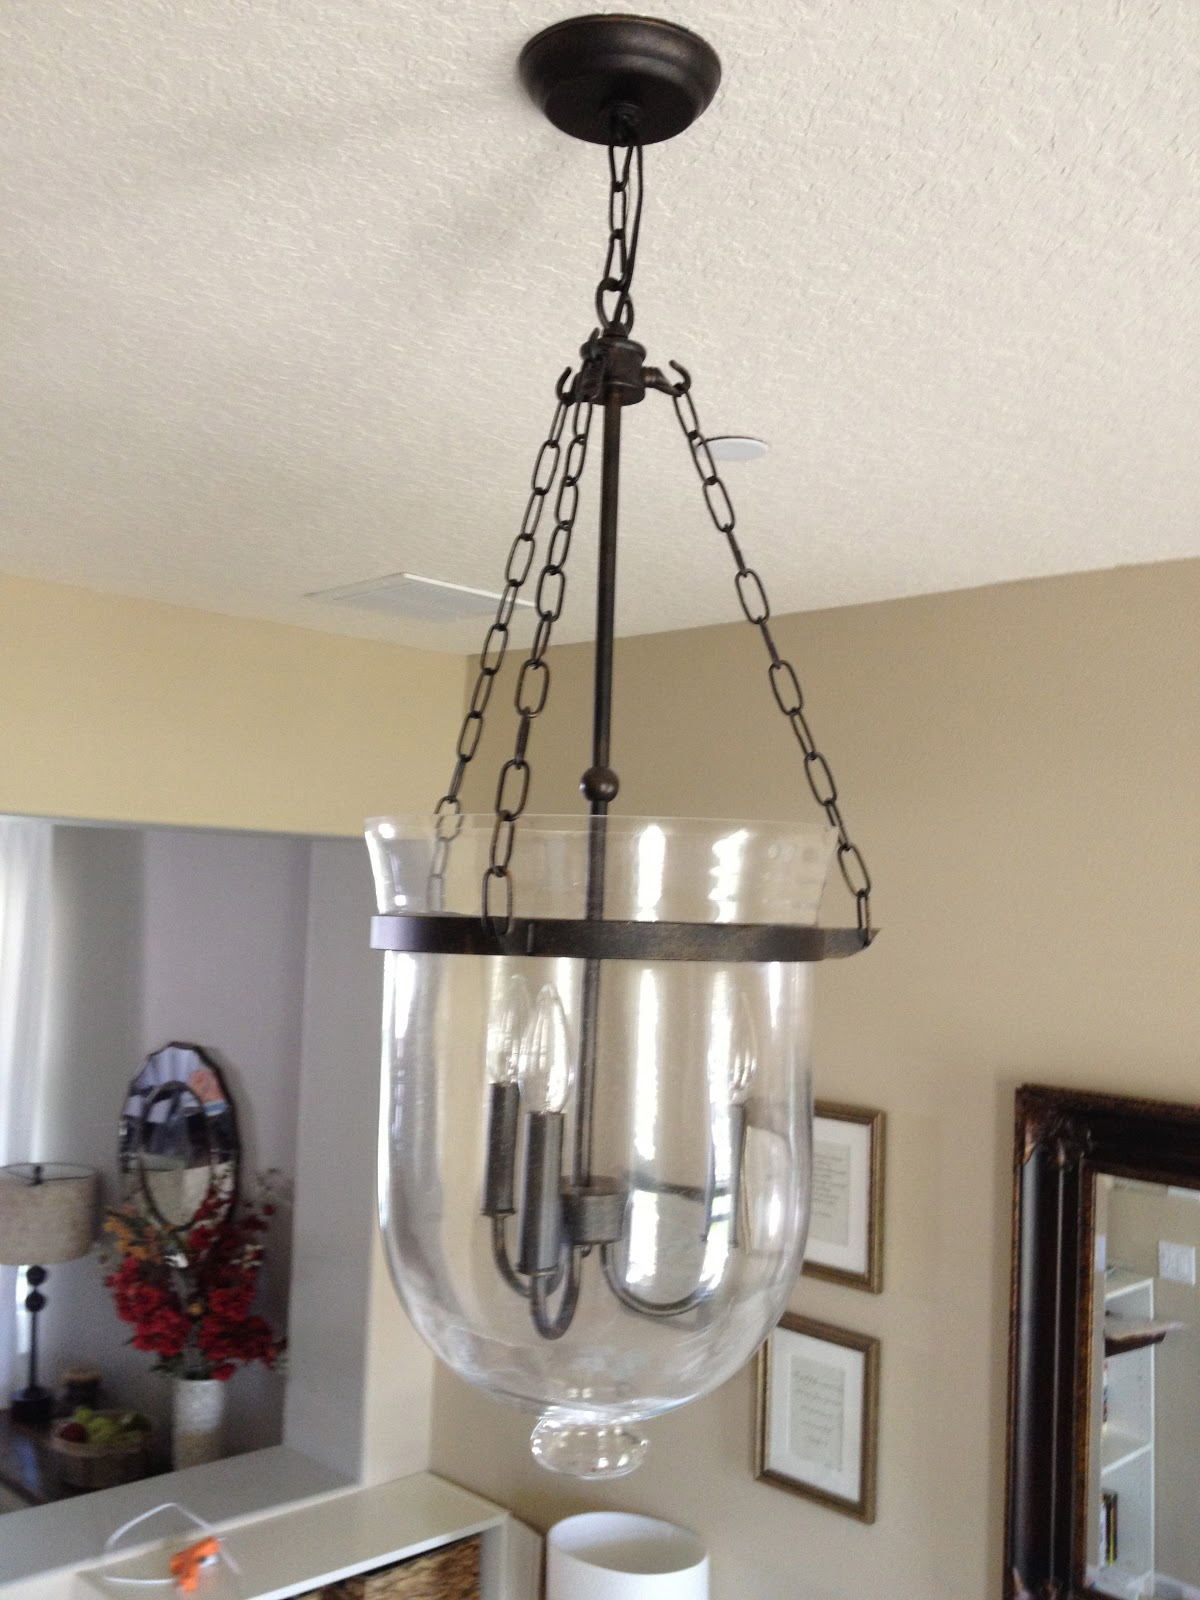 Pottery Barn Chandelier Knock f